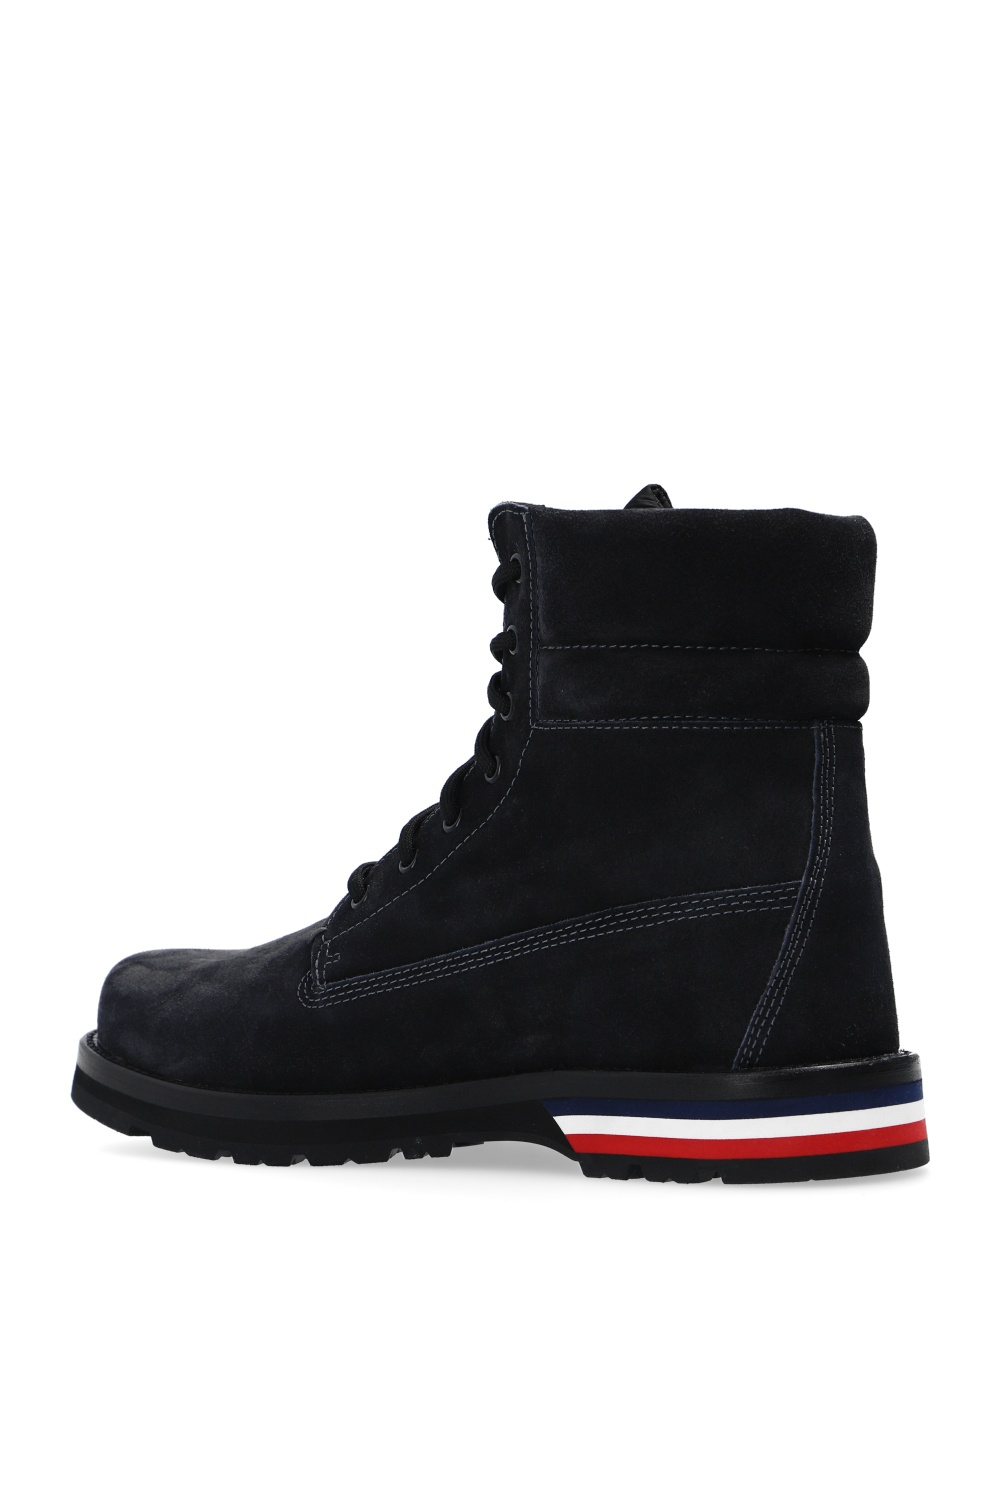 Moncler 'Vancouver' ankle boots with logo